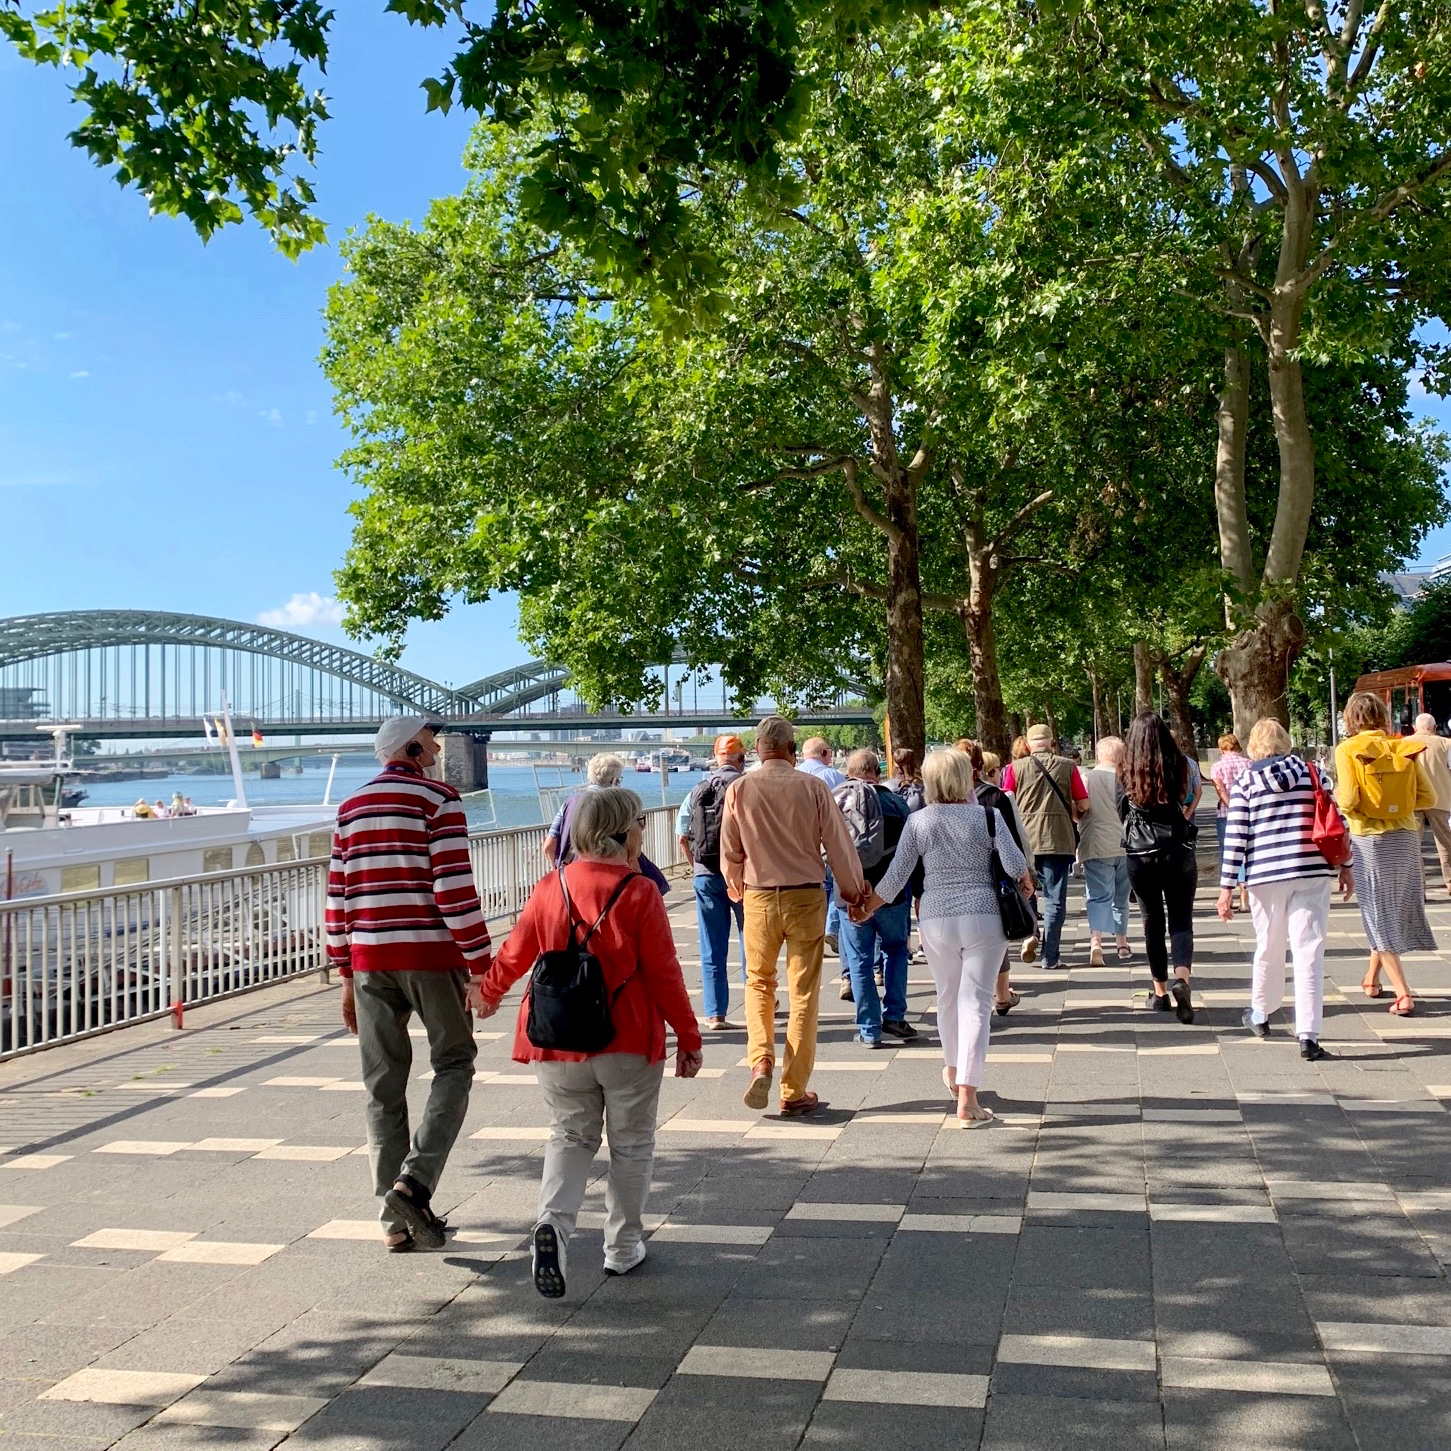 Tour group walks along the riverbank in Cologne